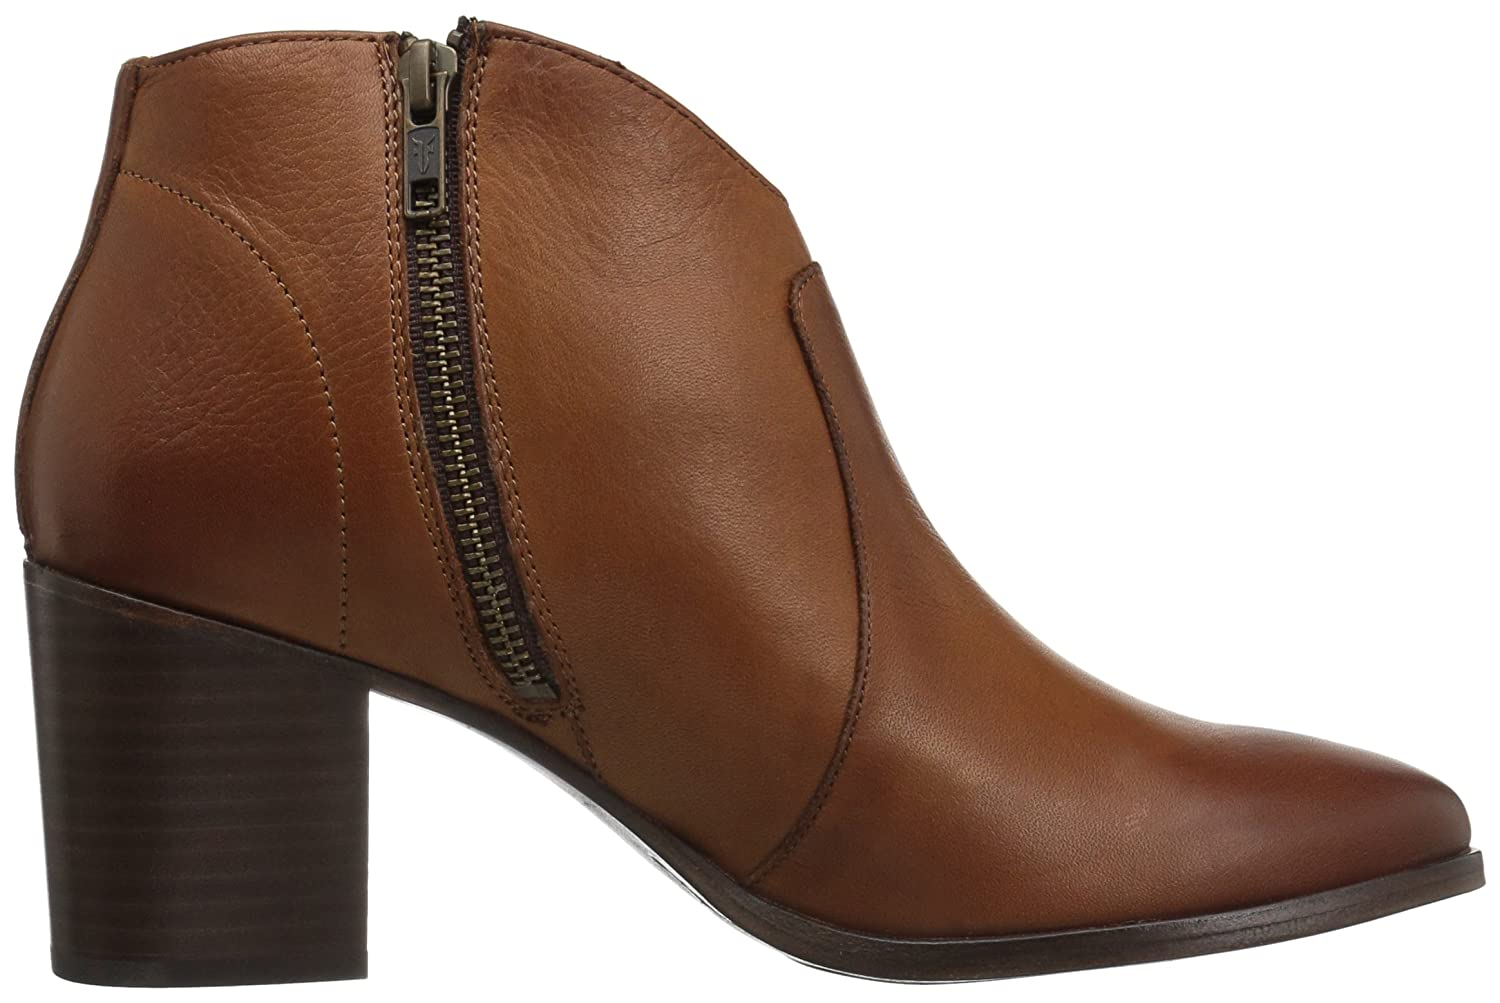 FRYE Women's Nora Zip Short Ankle Boot B072MSP5L6 11 B(M) US|Nutmeg